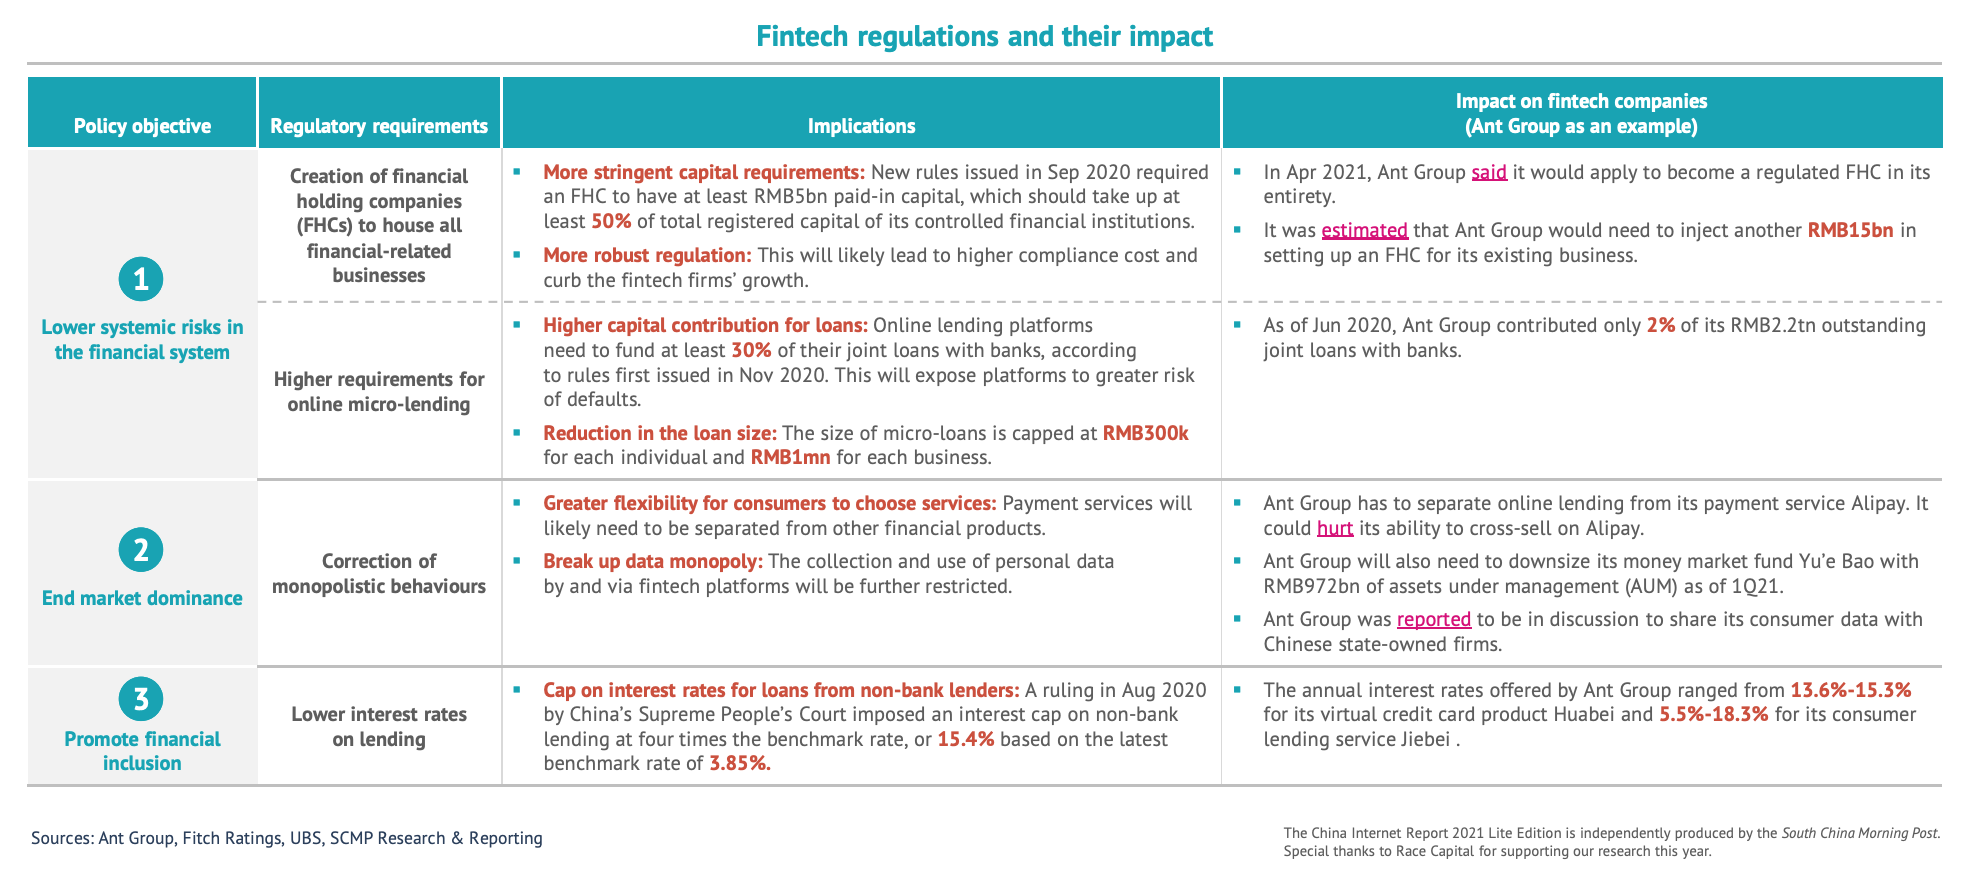 Fintech regulations and their impact, Source: China Internet Report 2021, South China Morning Post